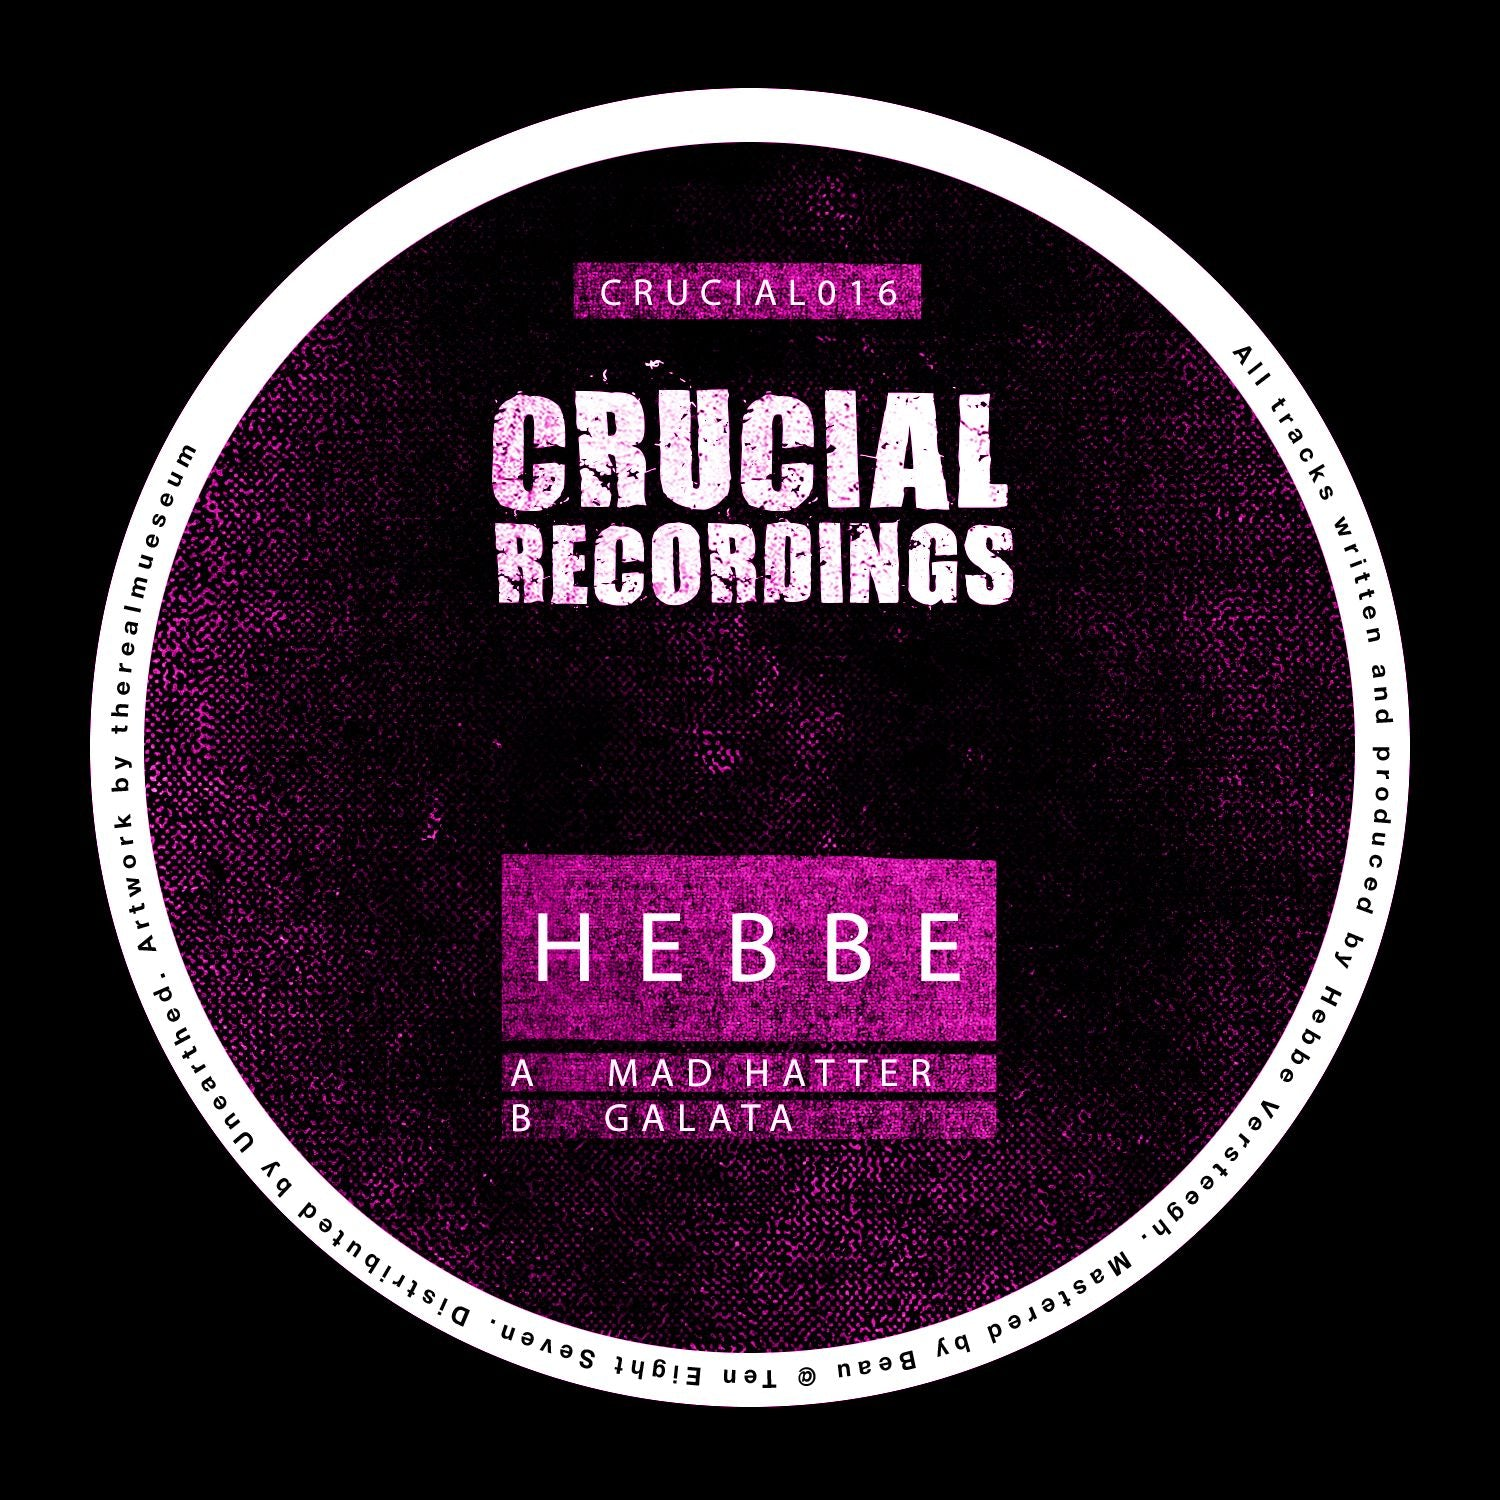 Hebbe - Mad Hatter / Galata